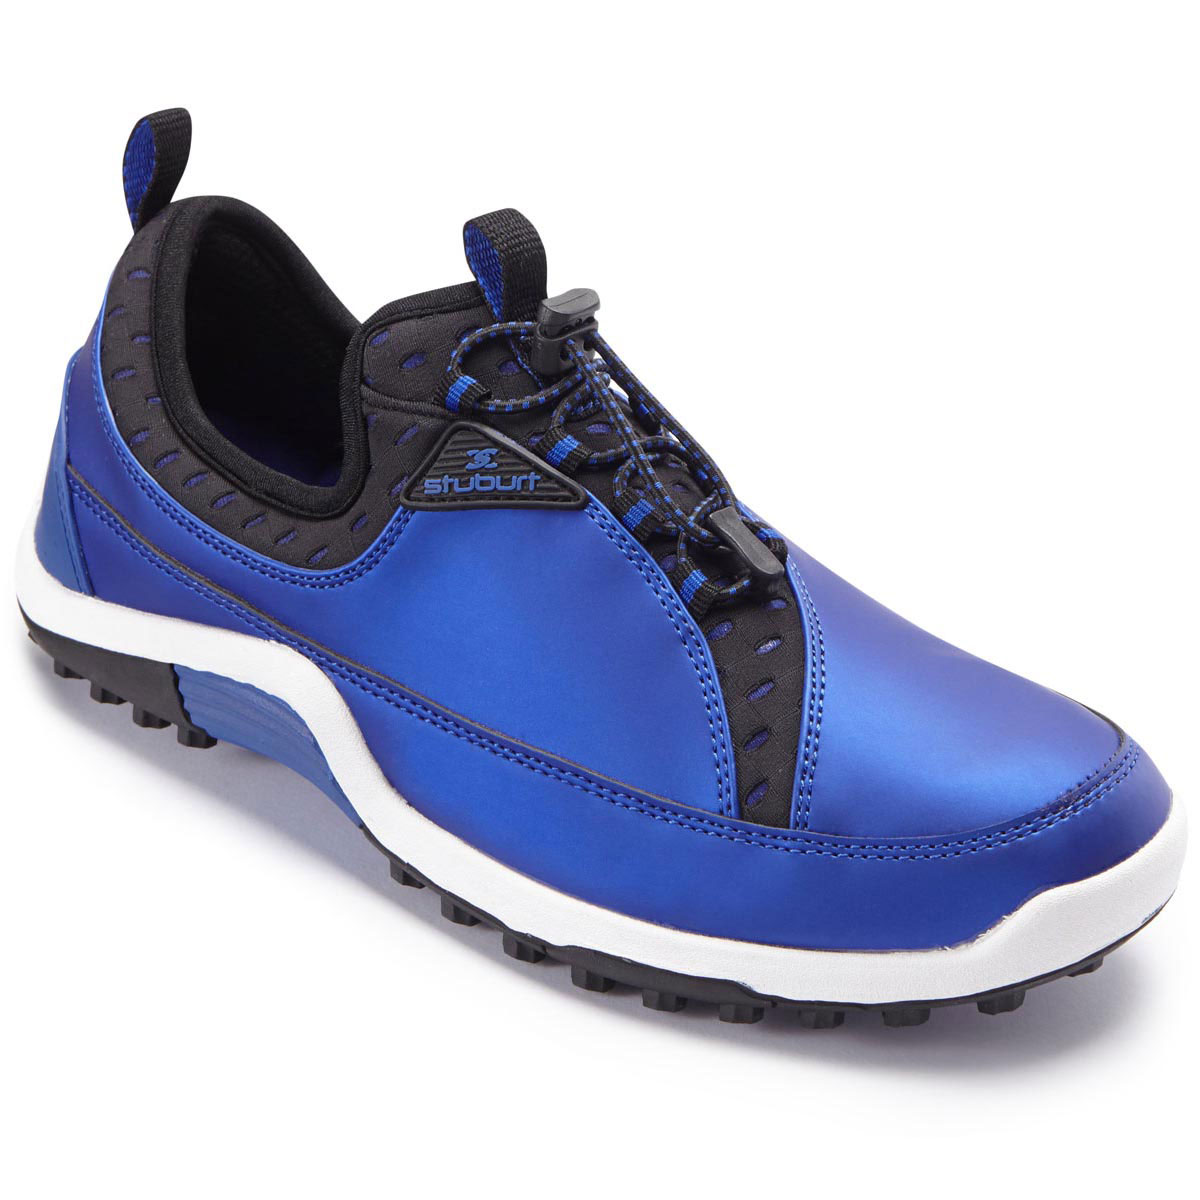 stuburt 2015 mens sport pro fit slip on golf shoes